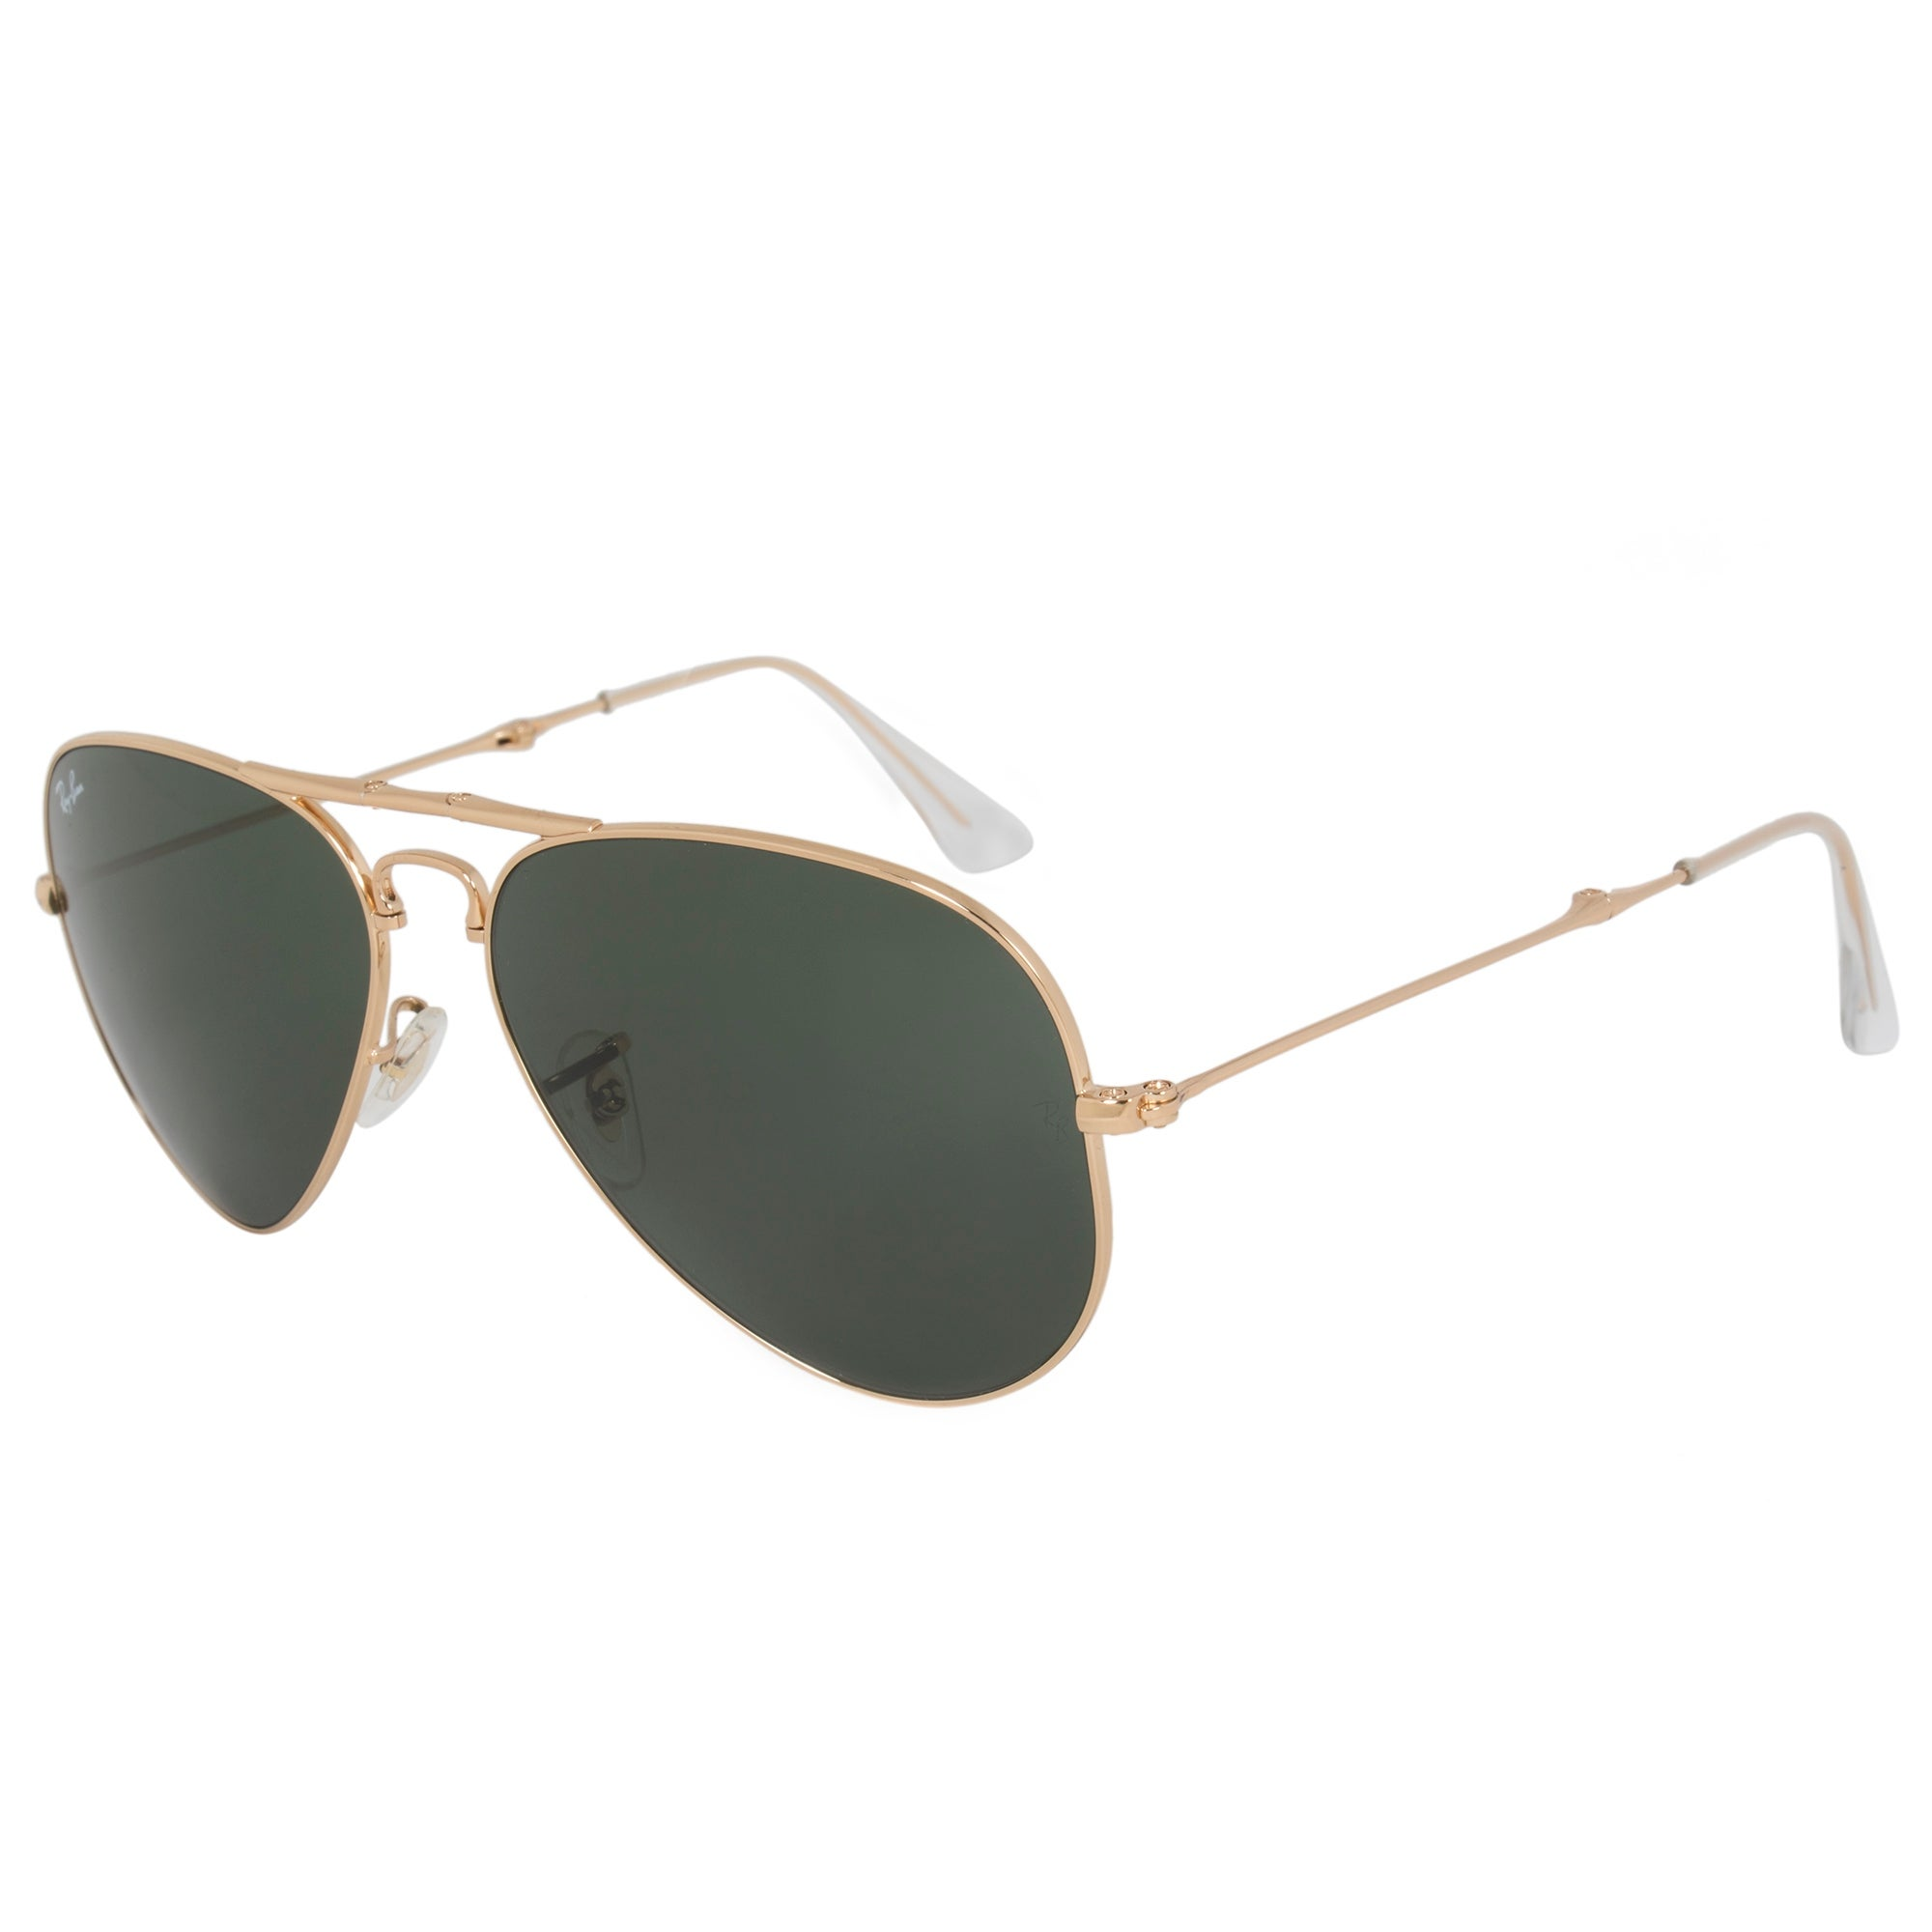 1f0bfd031a Shop Ray-Ban Aviator Folding RB3479 W3366 58 - Free Shipping Today -  Overstock.com - 19622940